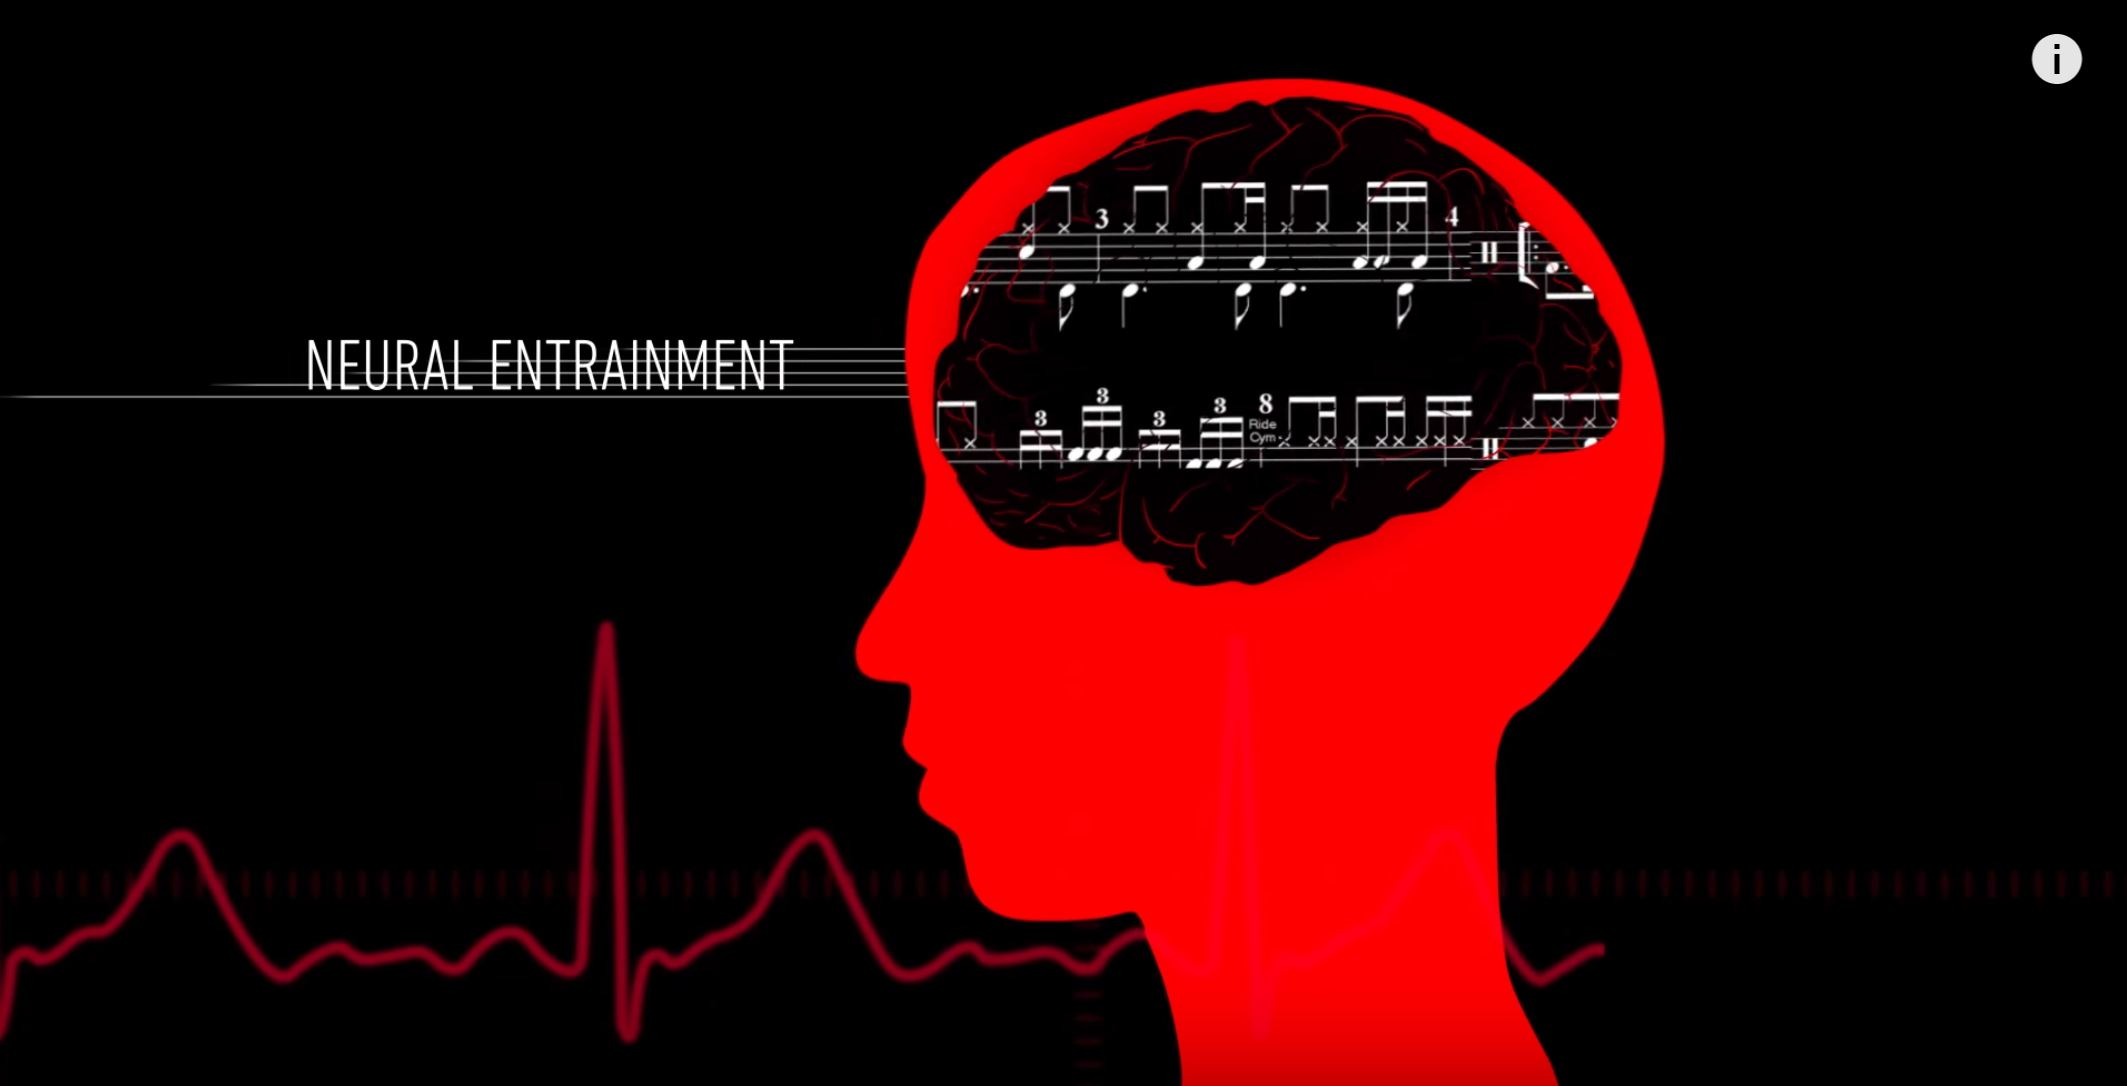 Why our brains love music with bass